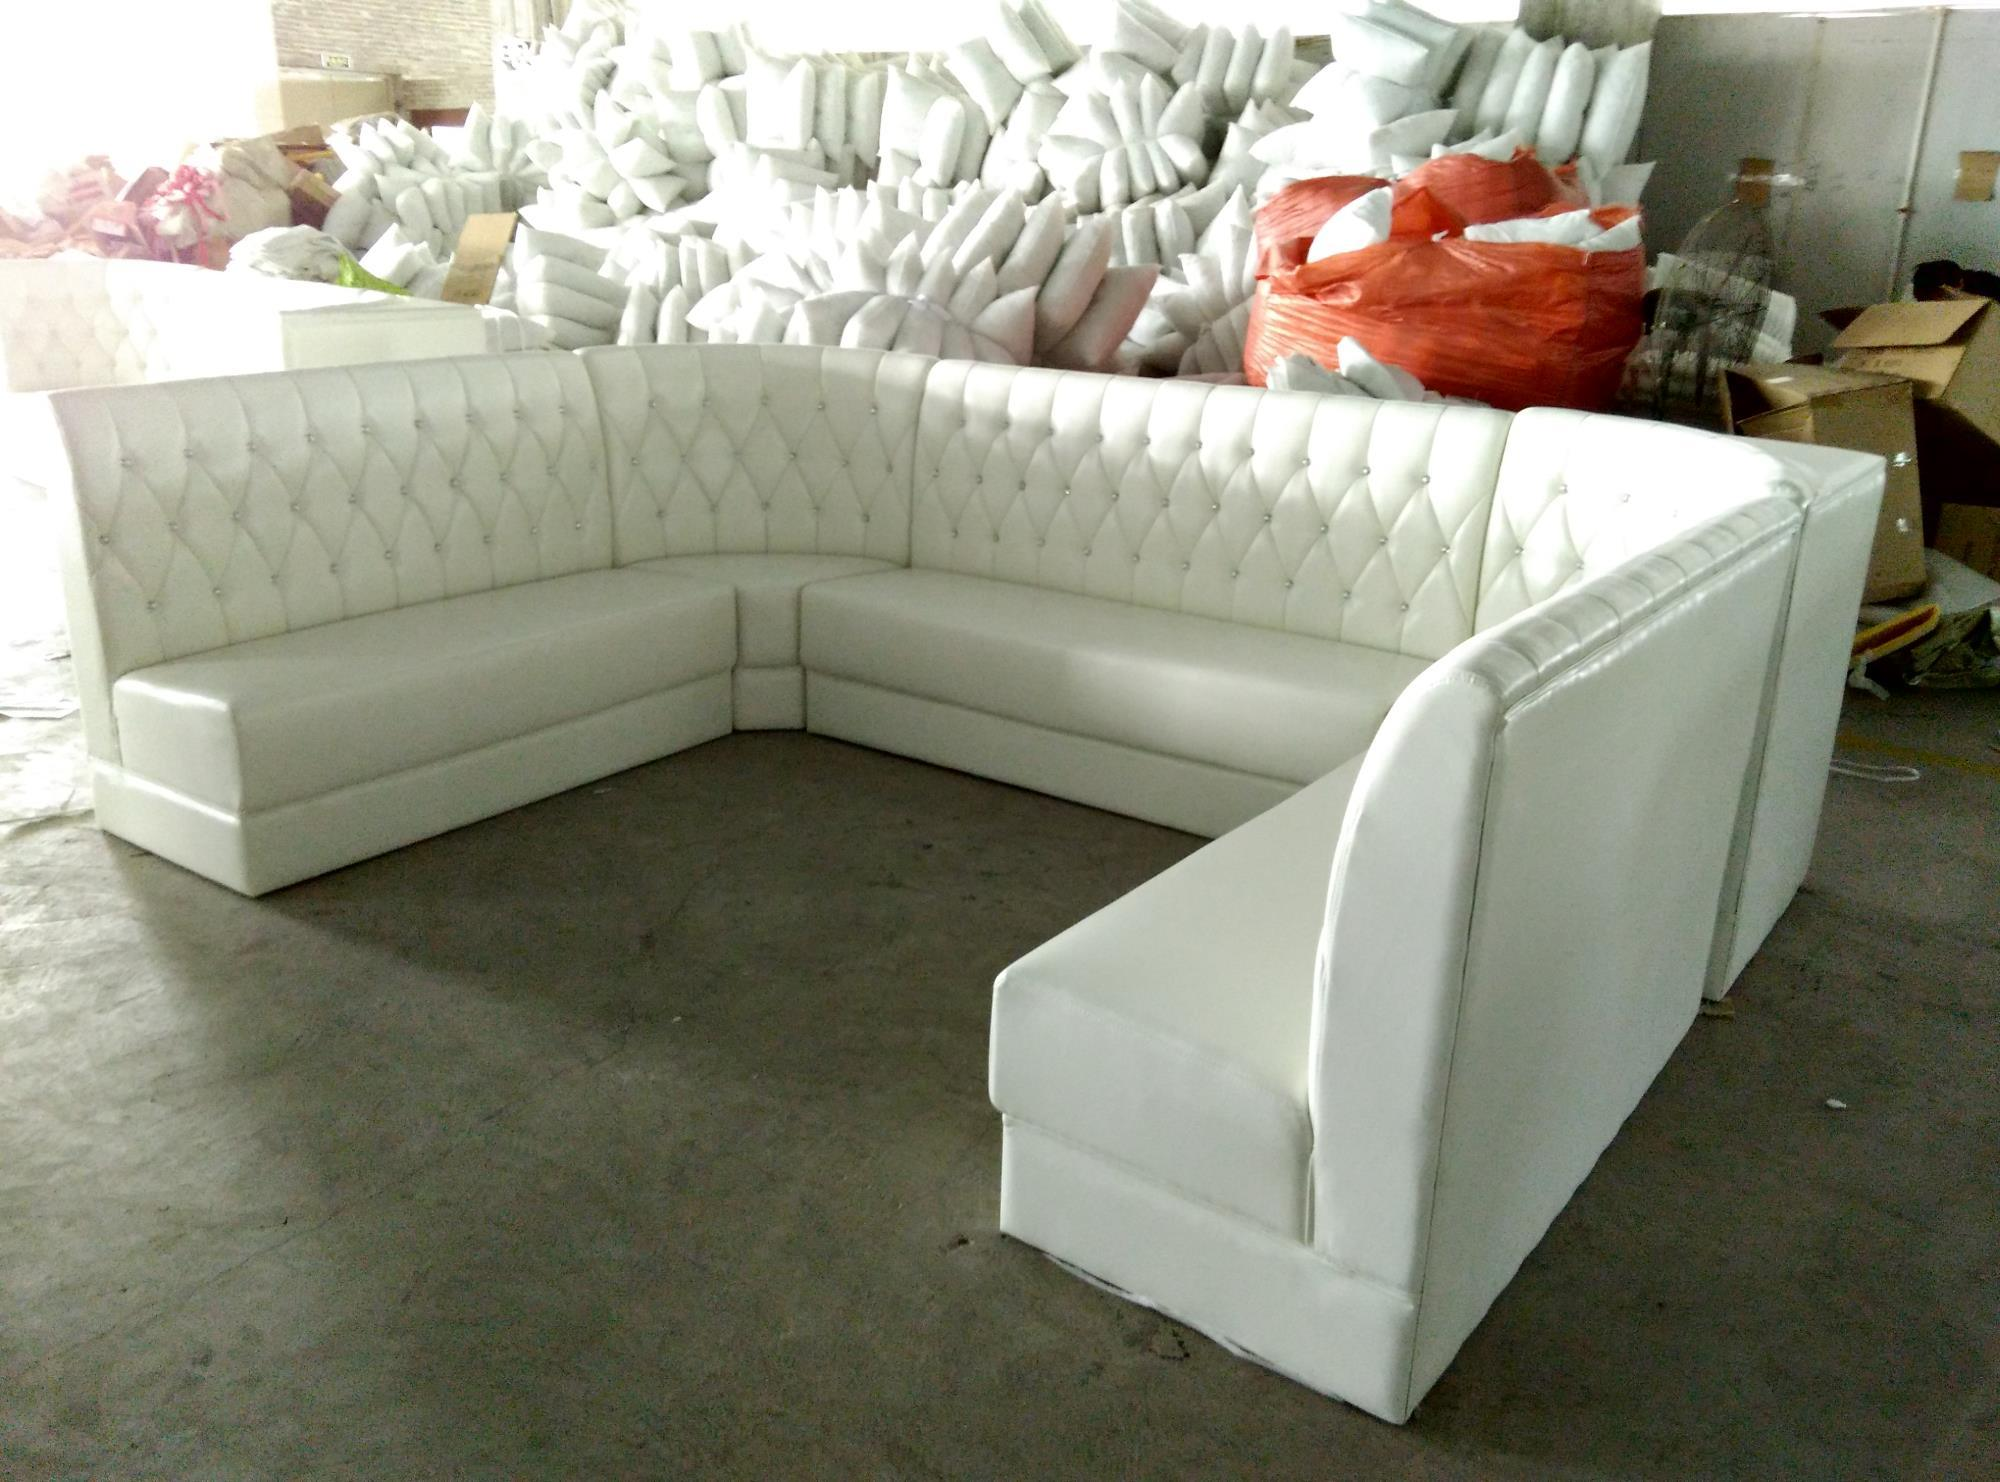 China Customized U Shape Restaurant Sofa Booth Seating In White Vinyl Leather Photos Pictures